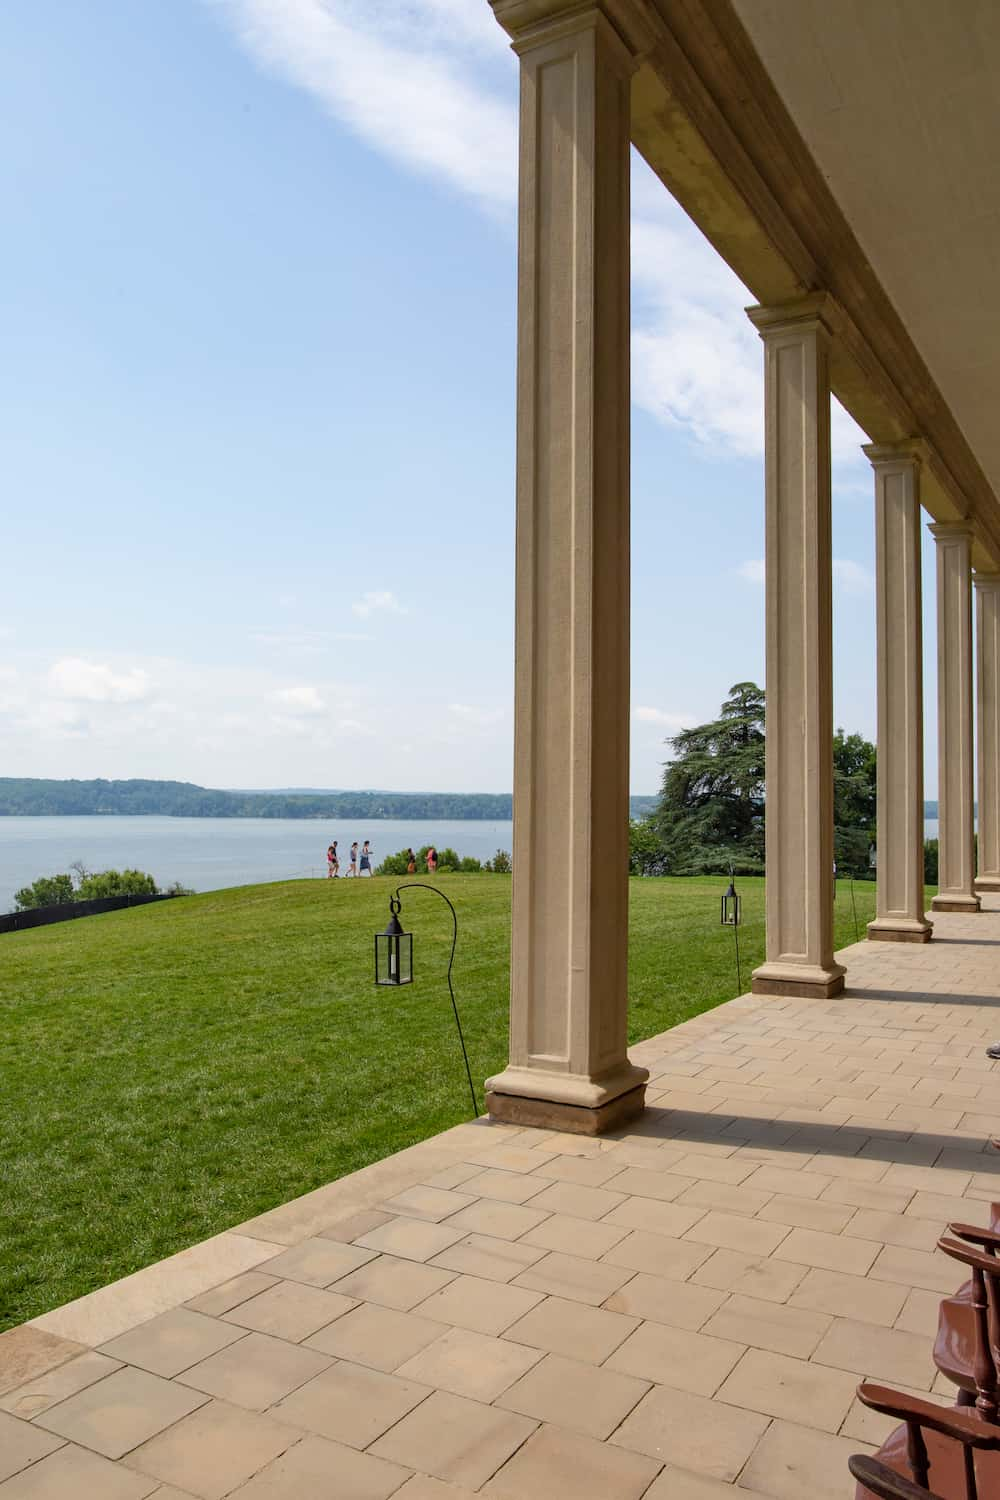 Mount Vernon view to the Potomac